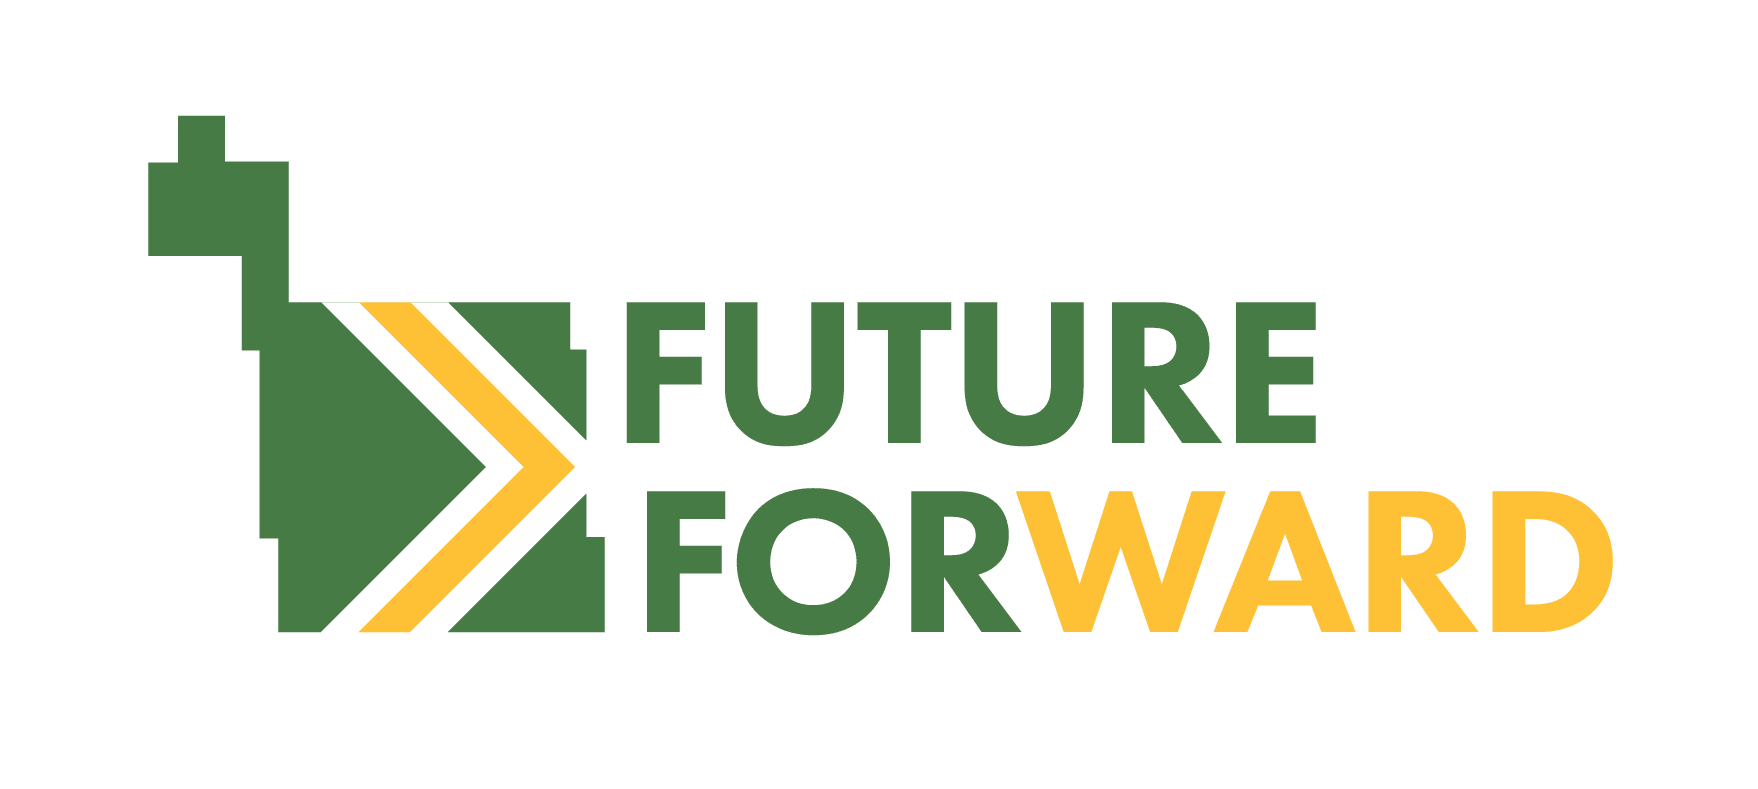 Future_ForWard_Logo-1